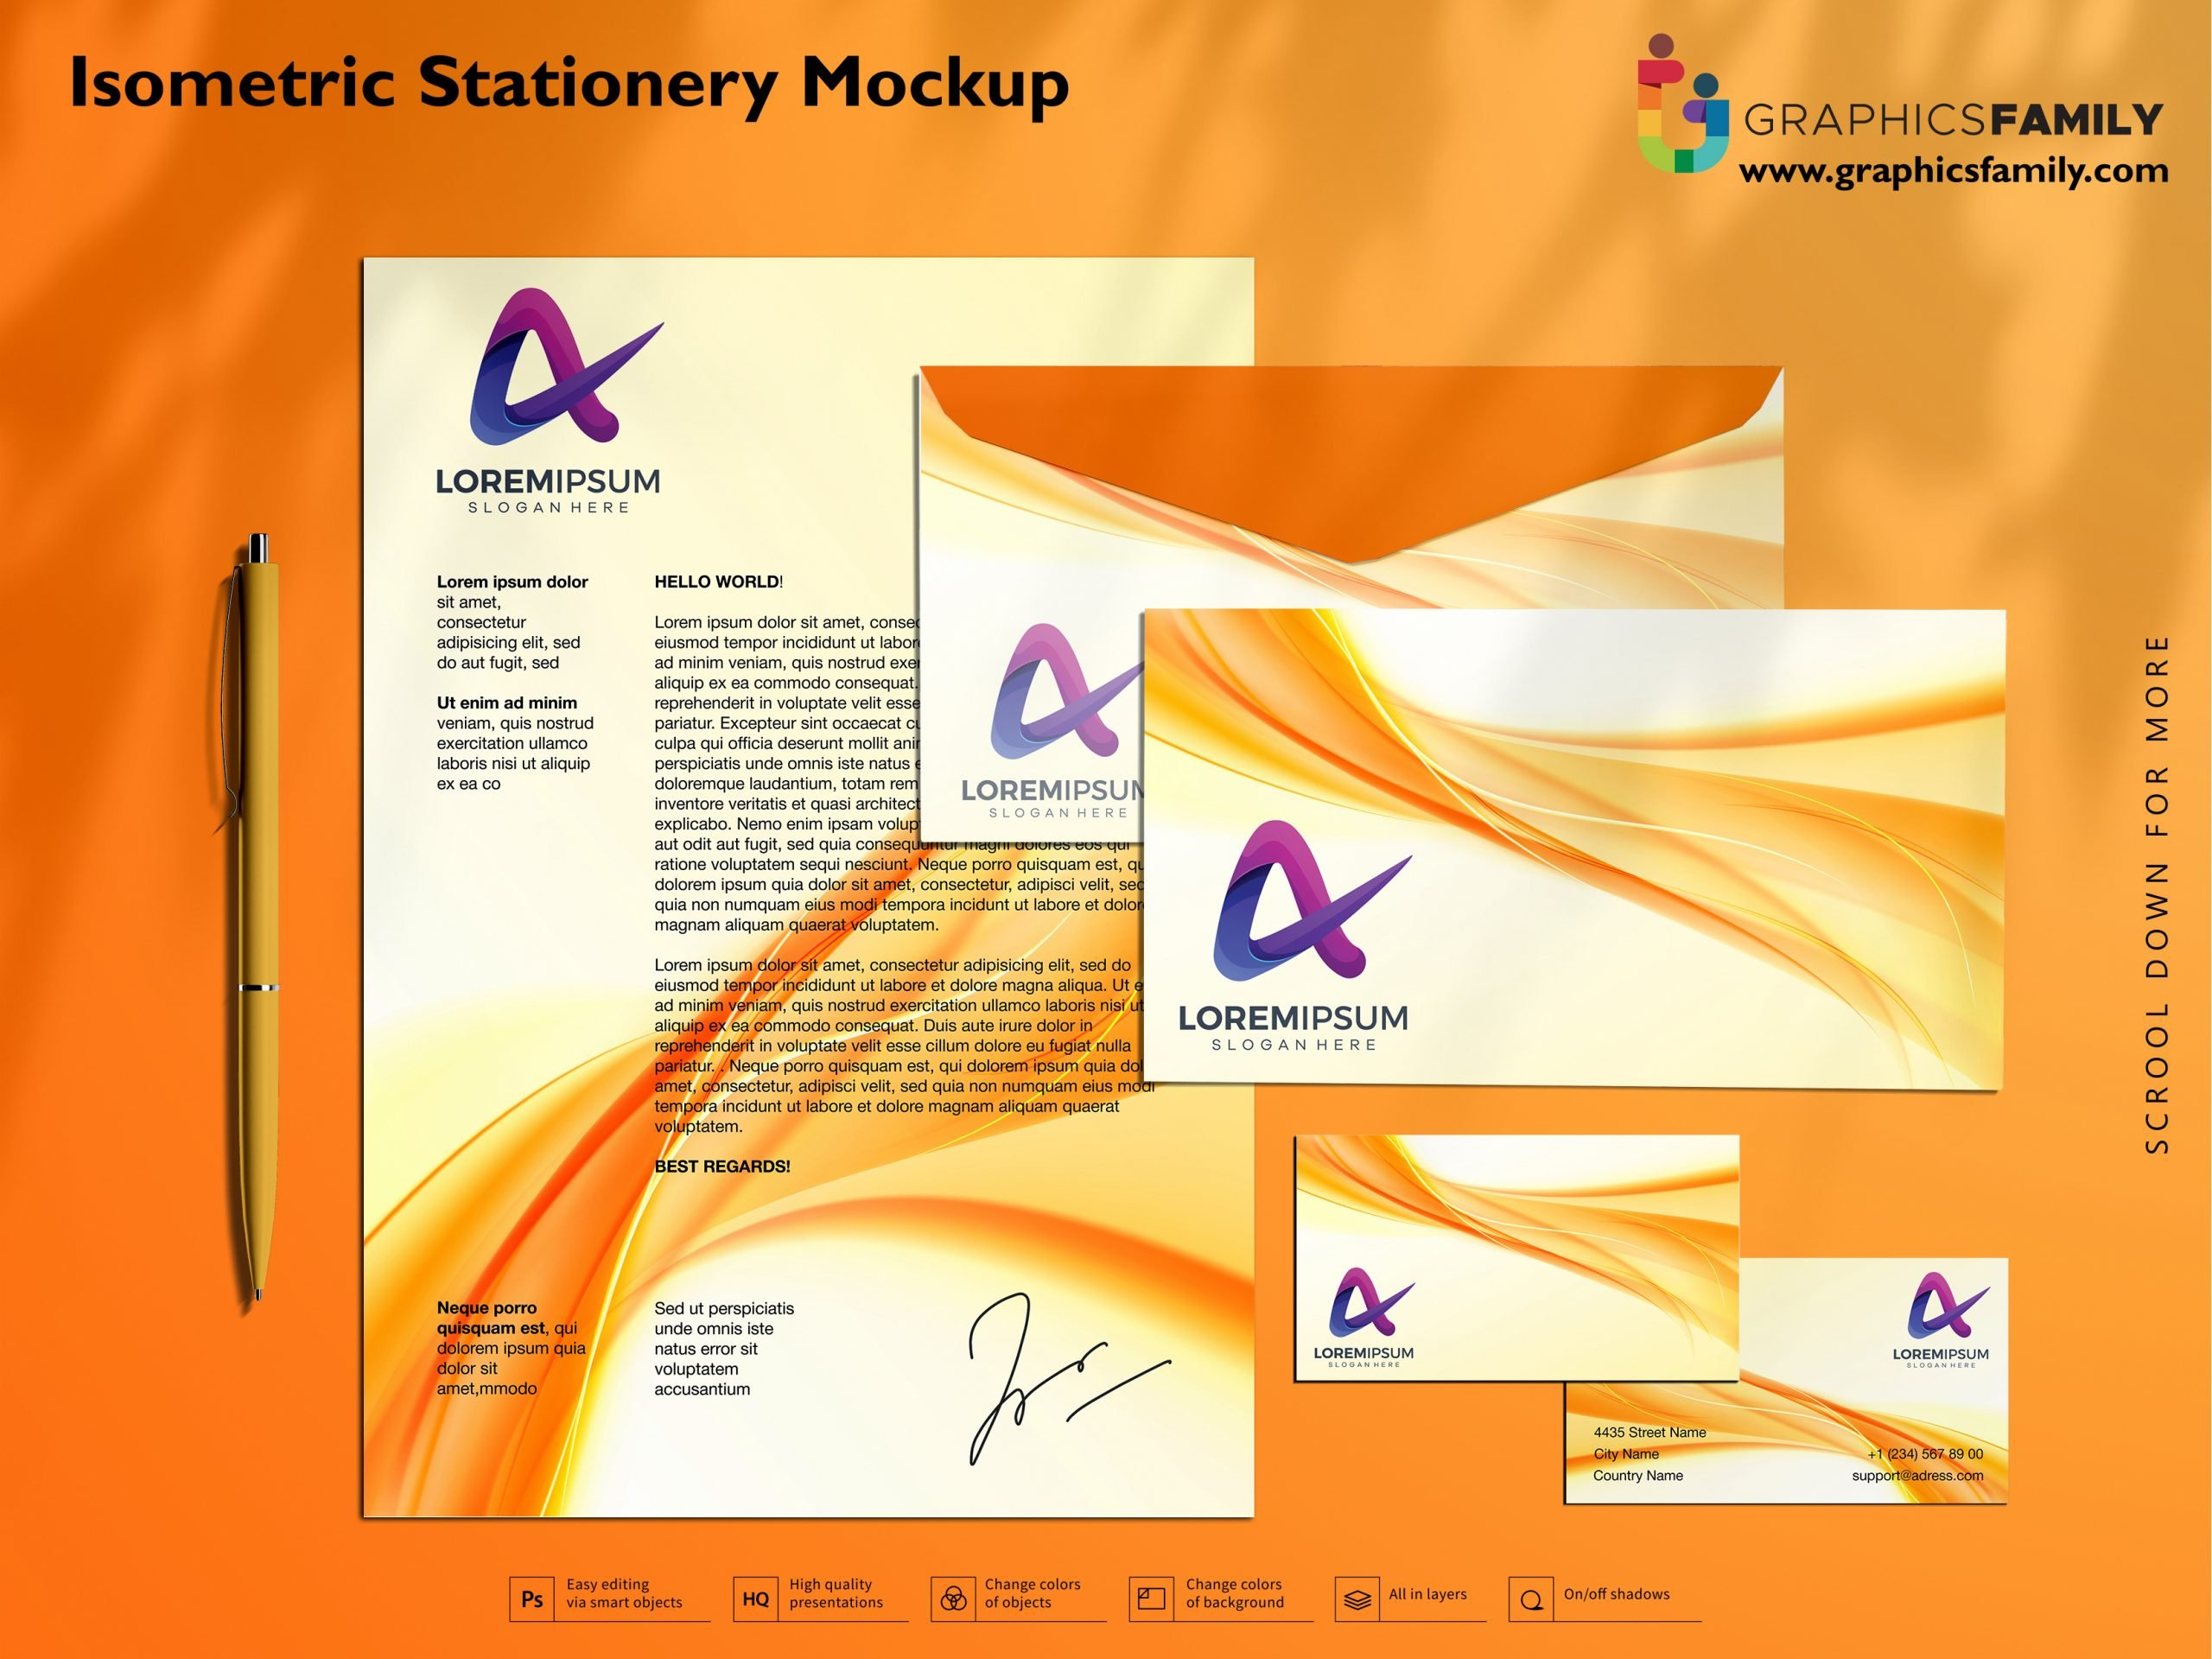 Isometric Stationery Mockup Free PSD Download